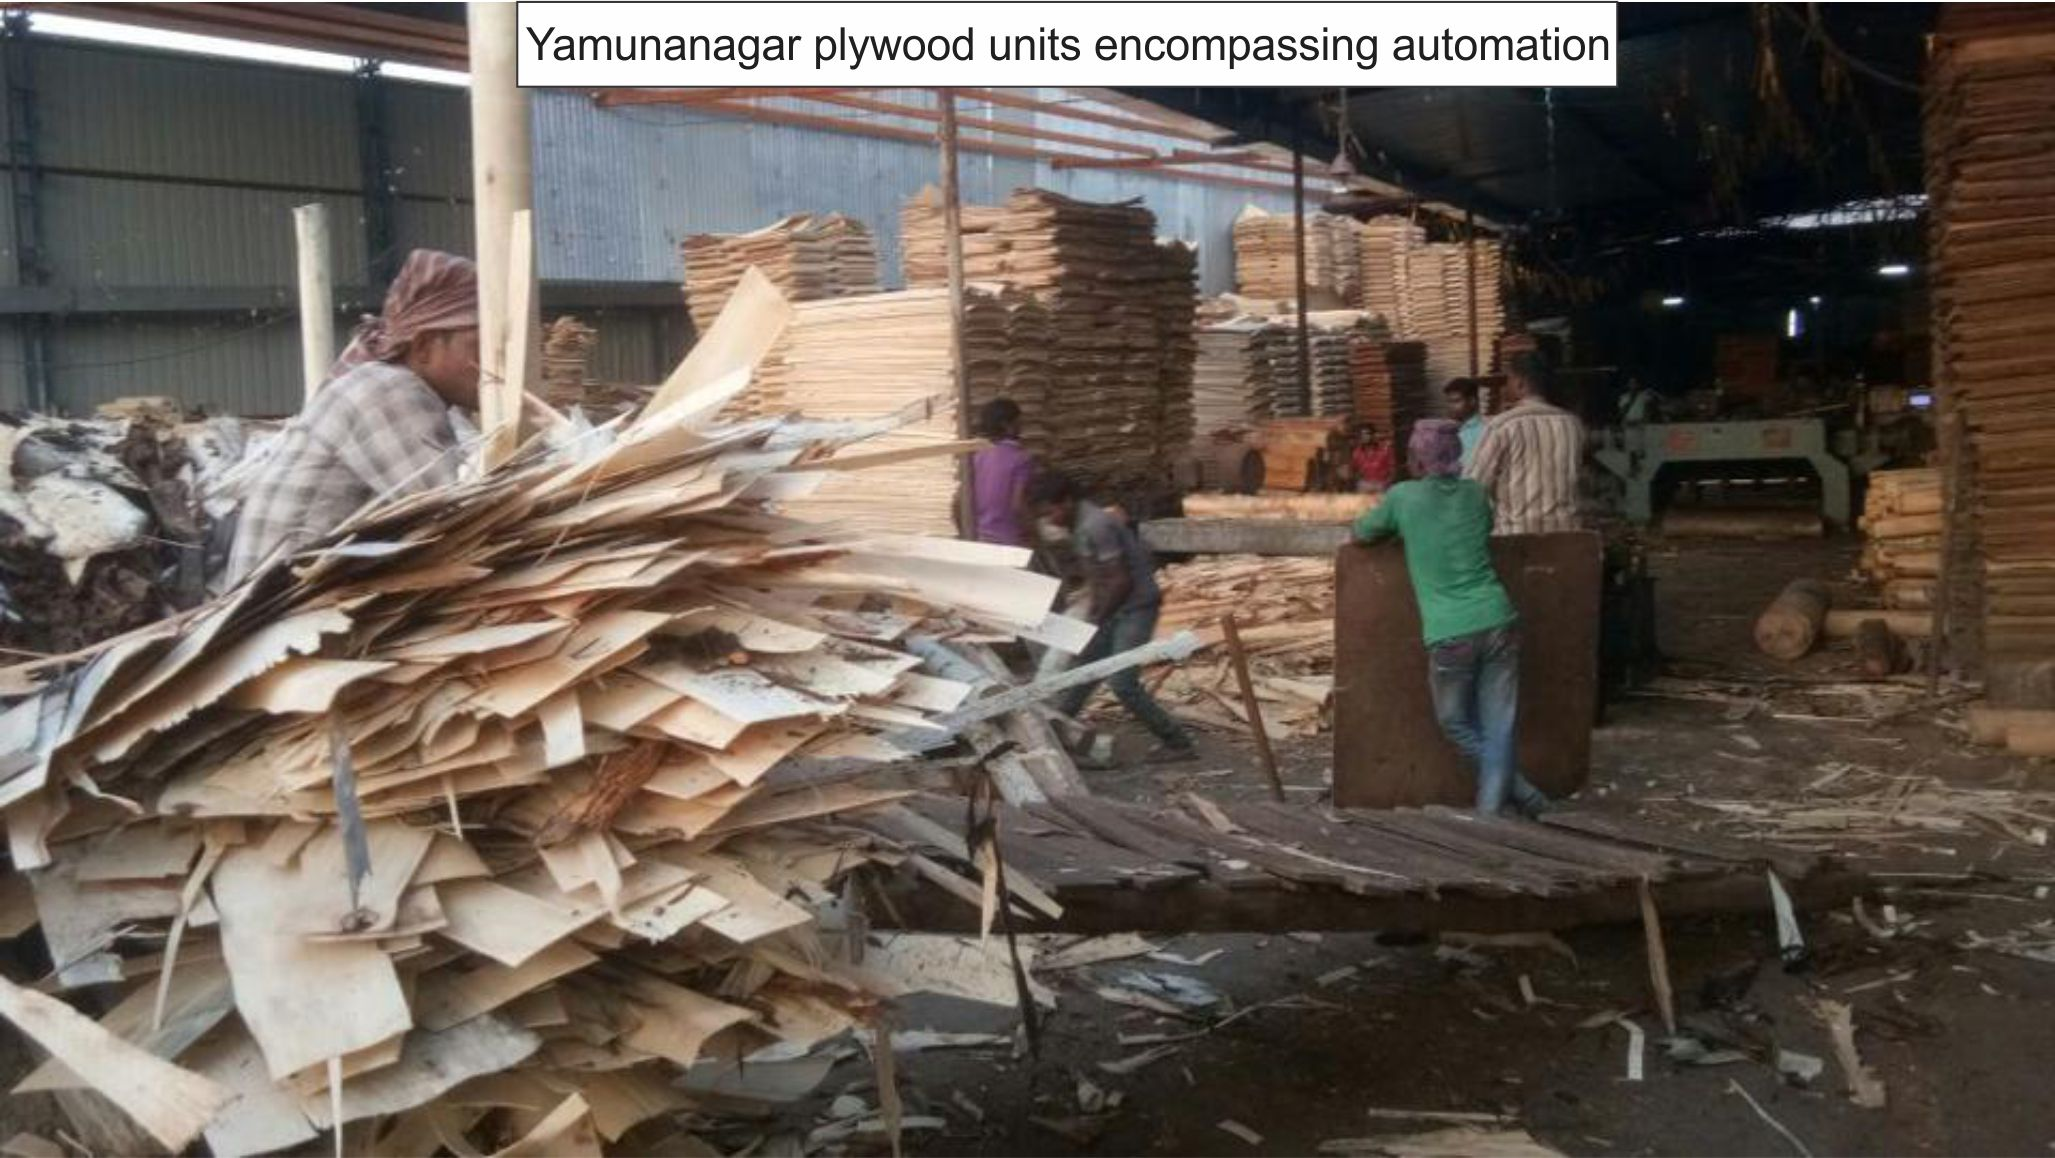 Yamunanagar plywood units encompassing automation